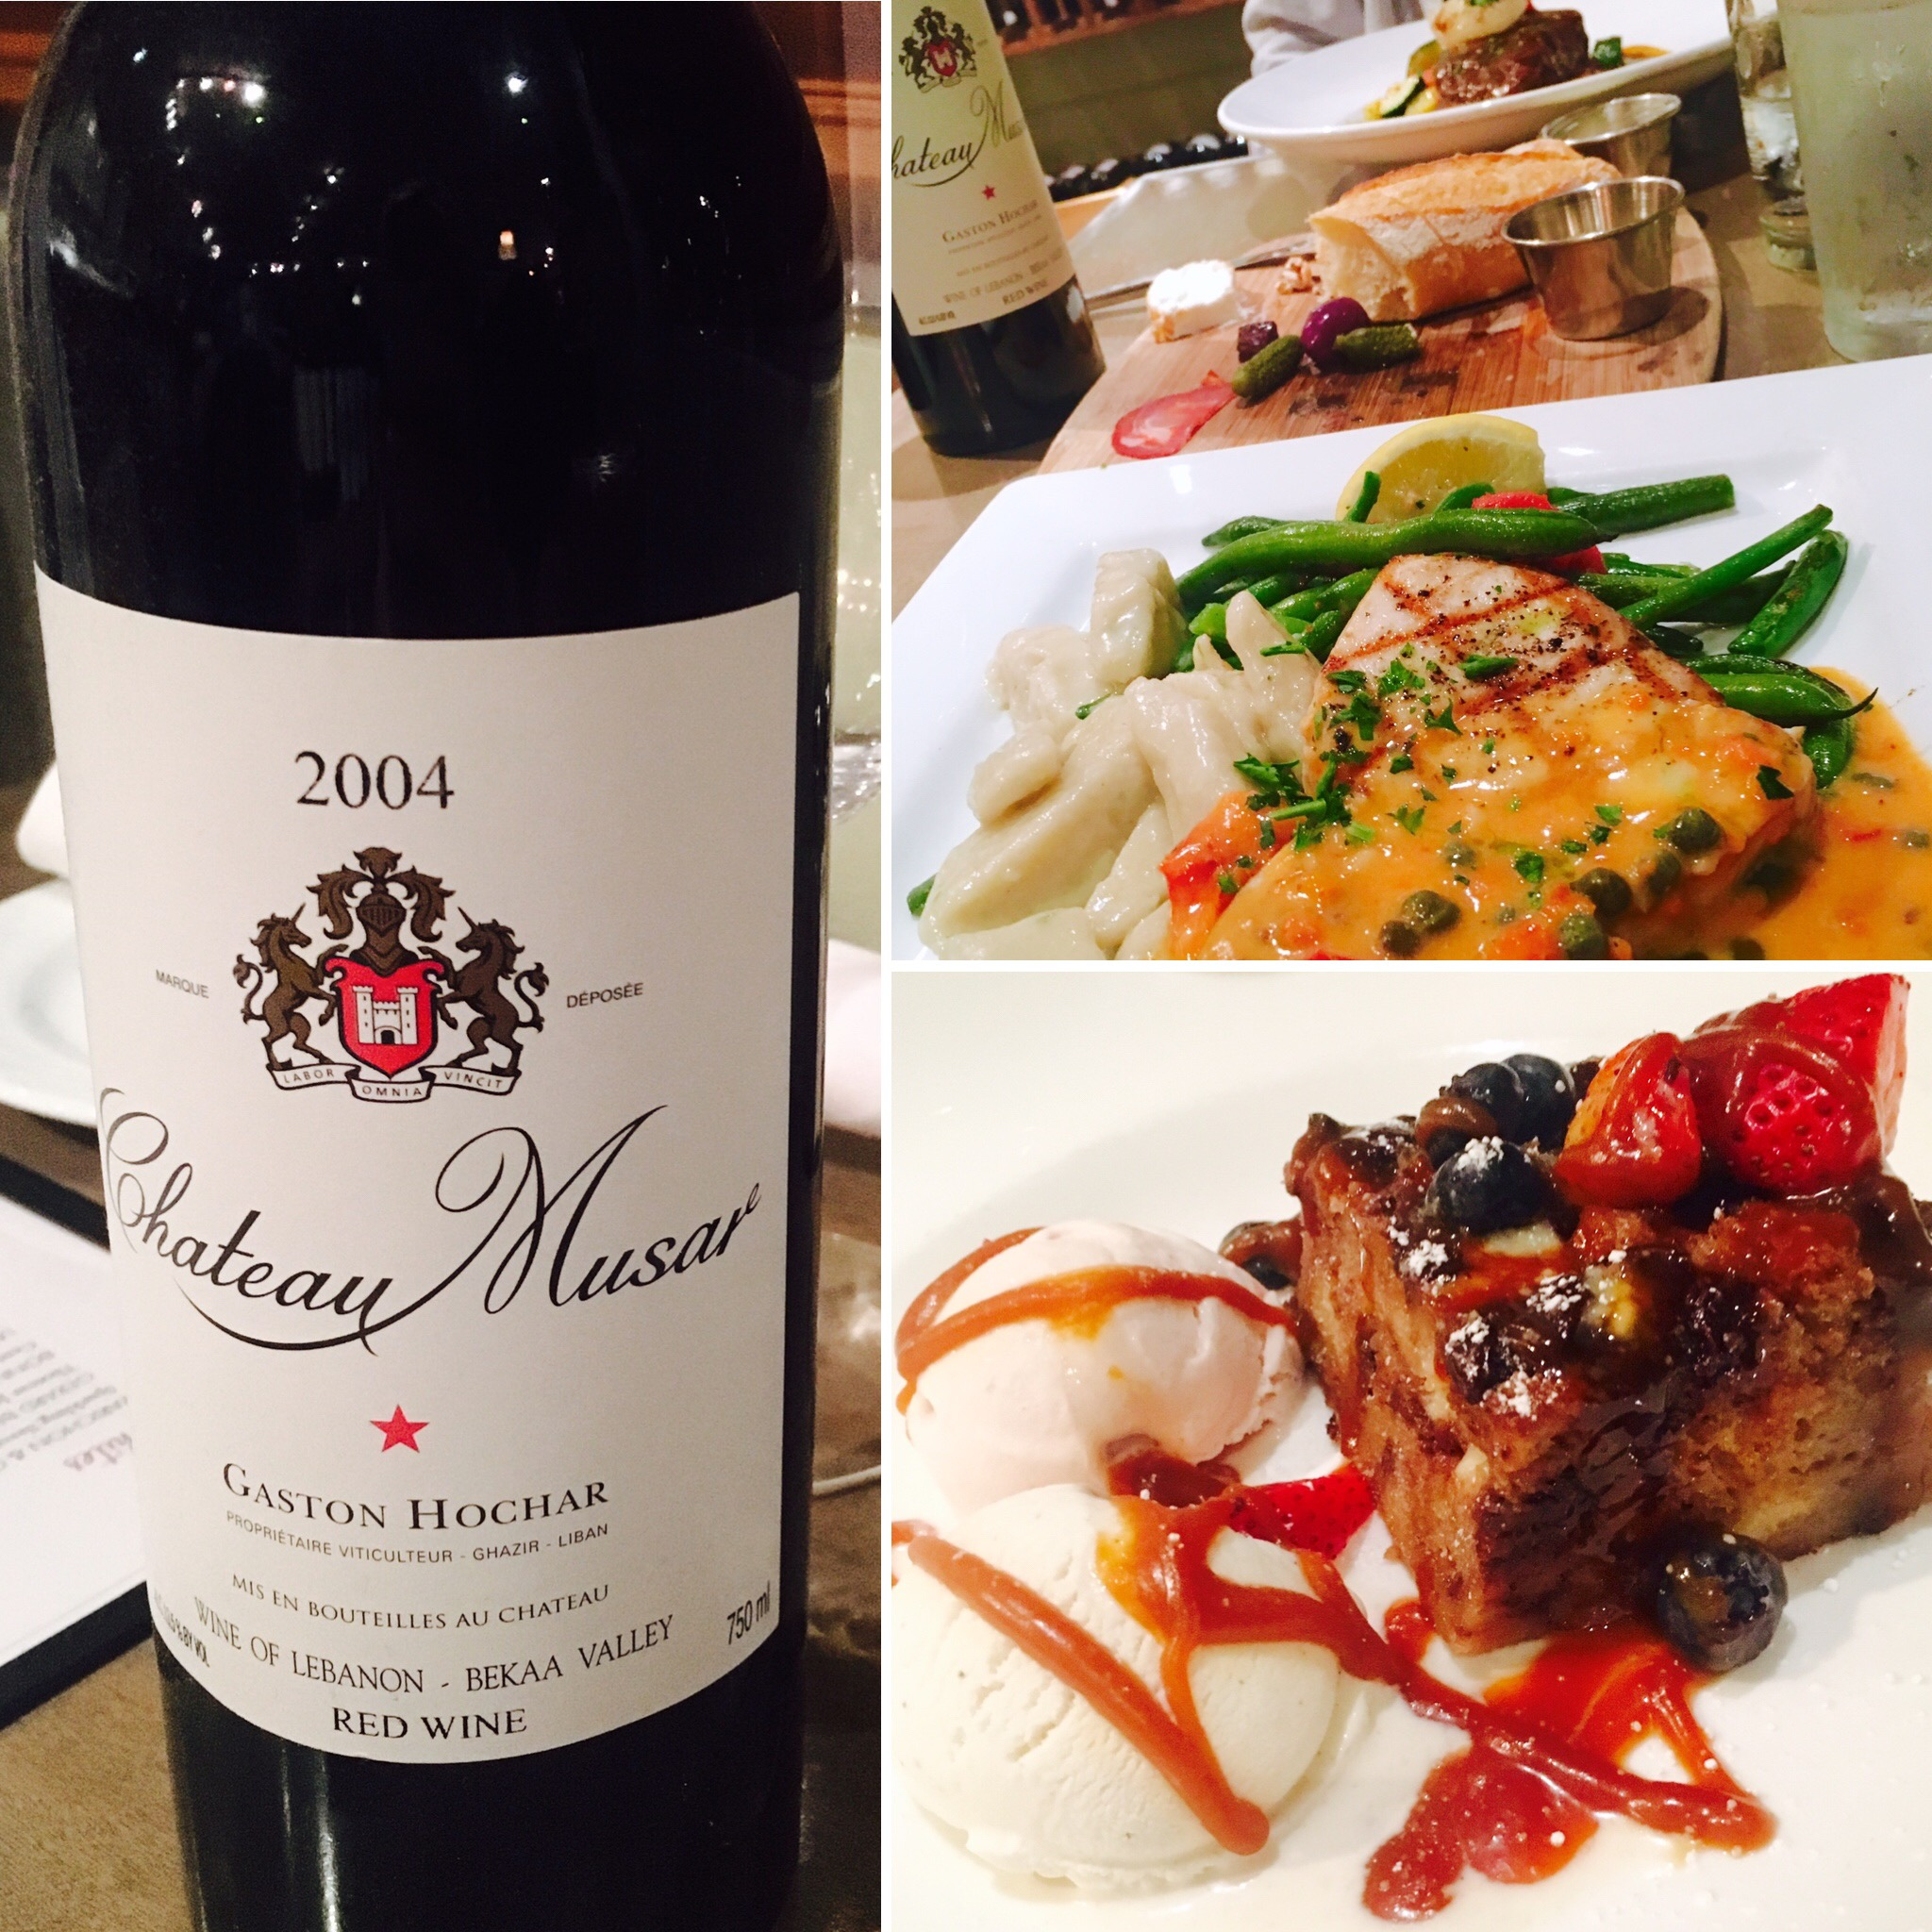 Dinner at 3rd Corner in San Diego with a bottle of Chateau Musar Lebanese wine